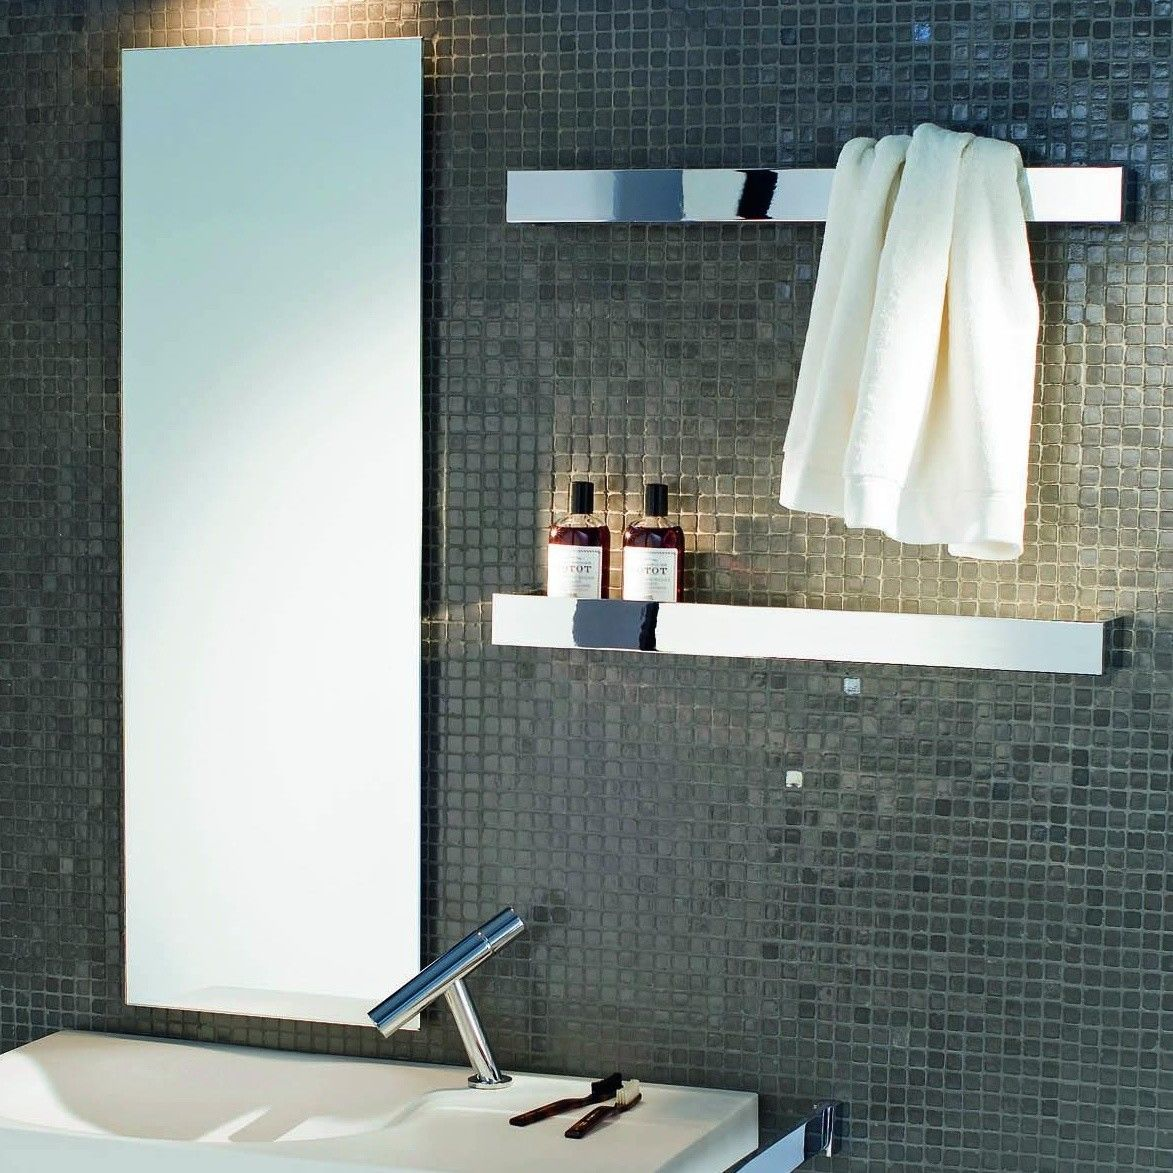 Decor Walther Brick Towel Rail Decor Walther Ambientedirect